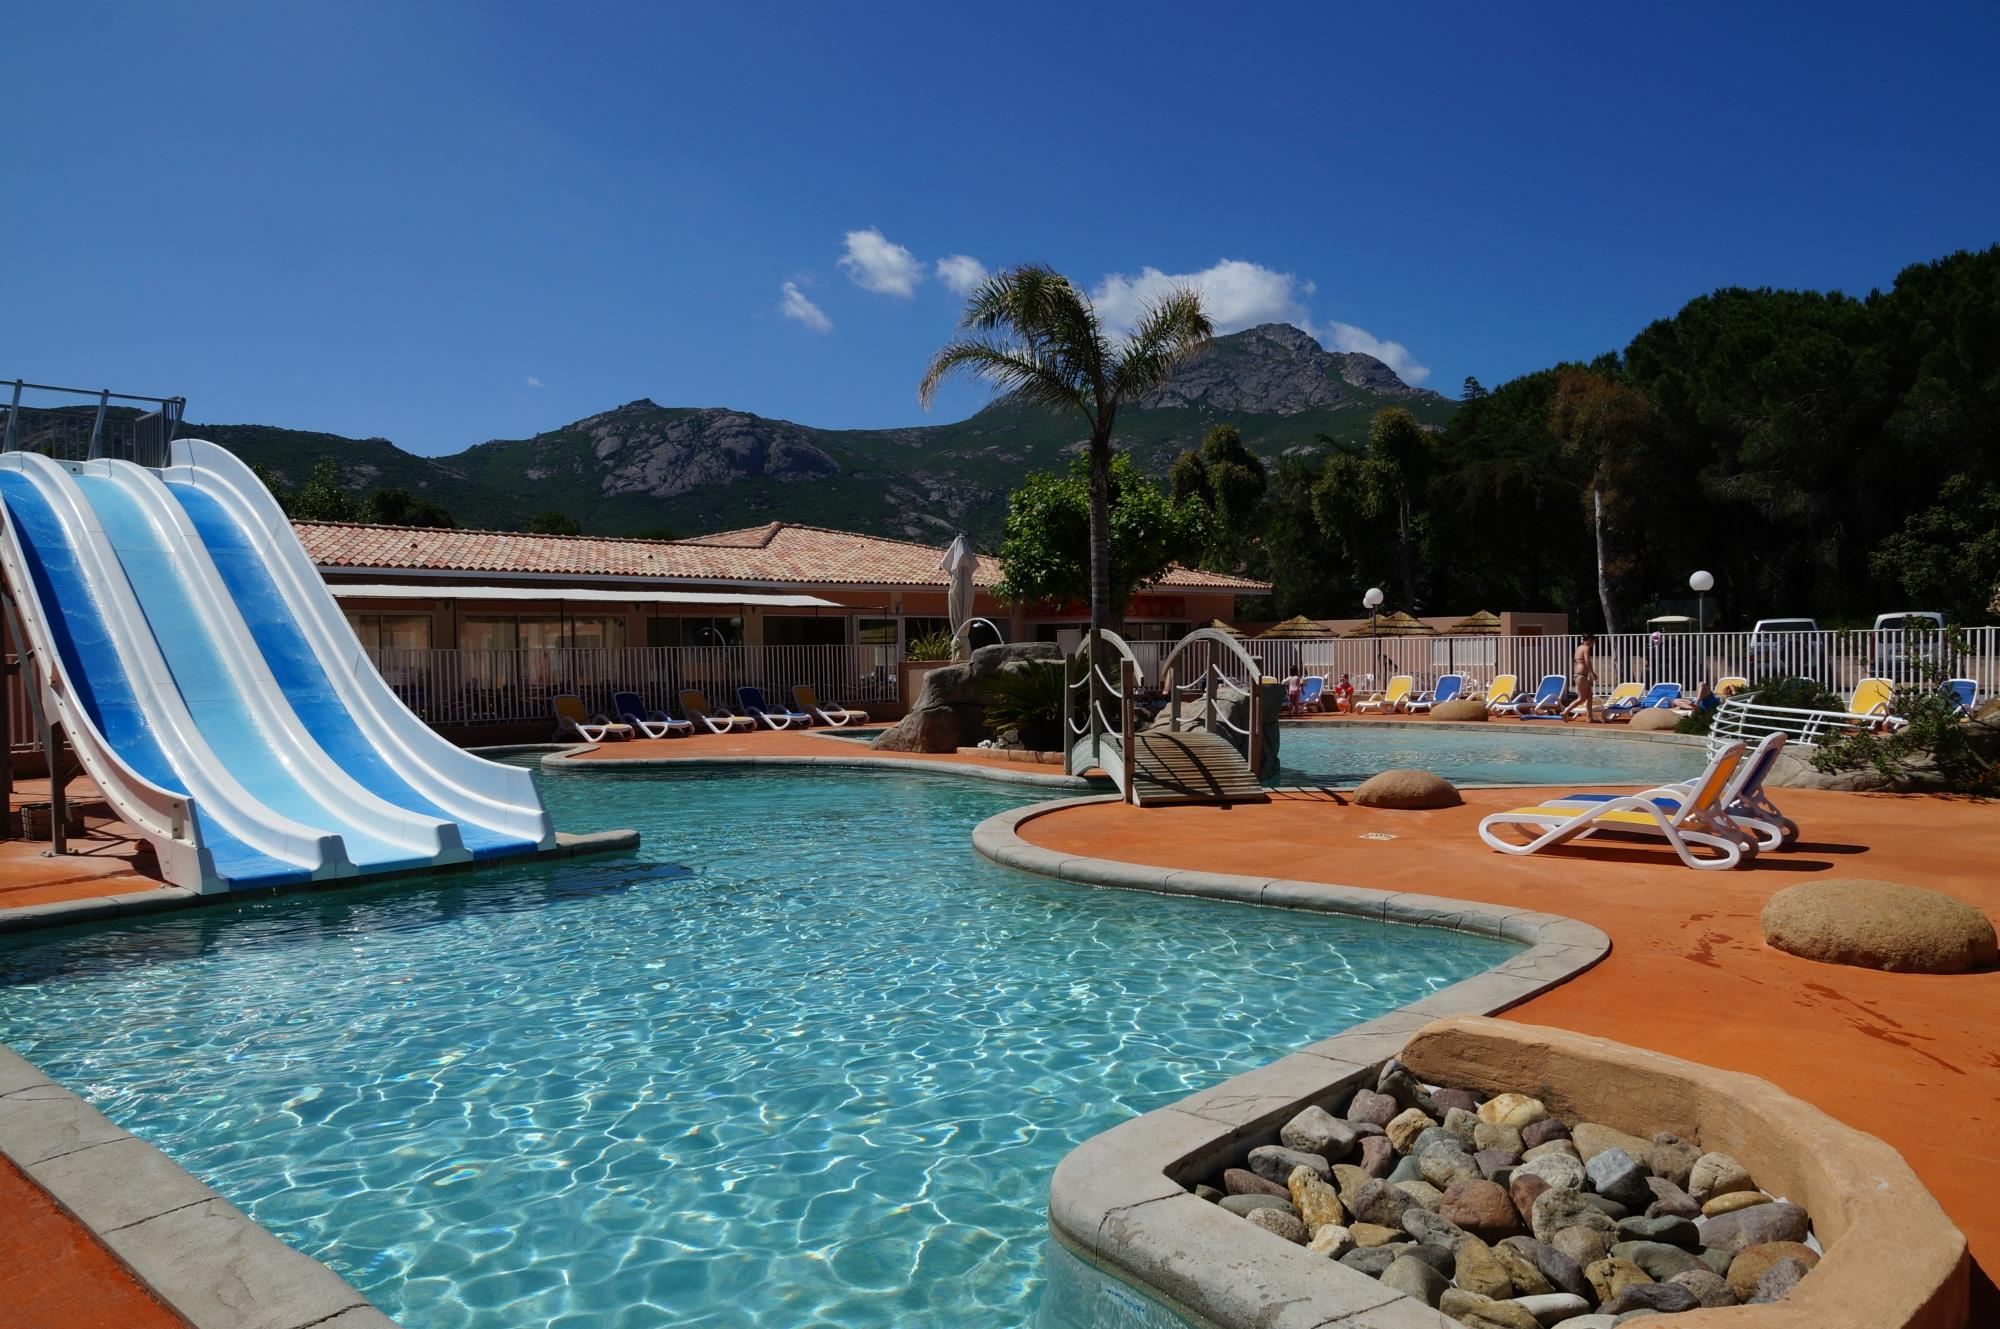 Establishment Camping Les Castors - Calvi